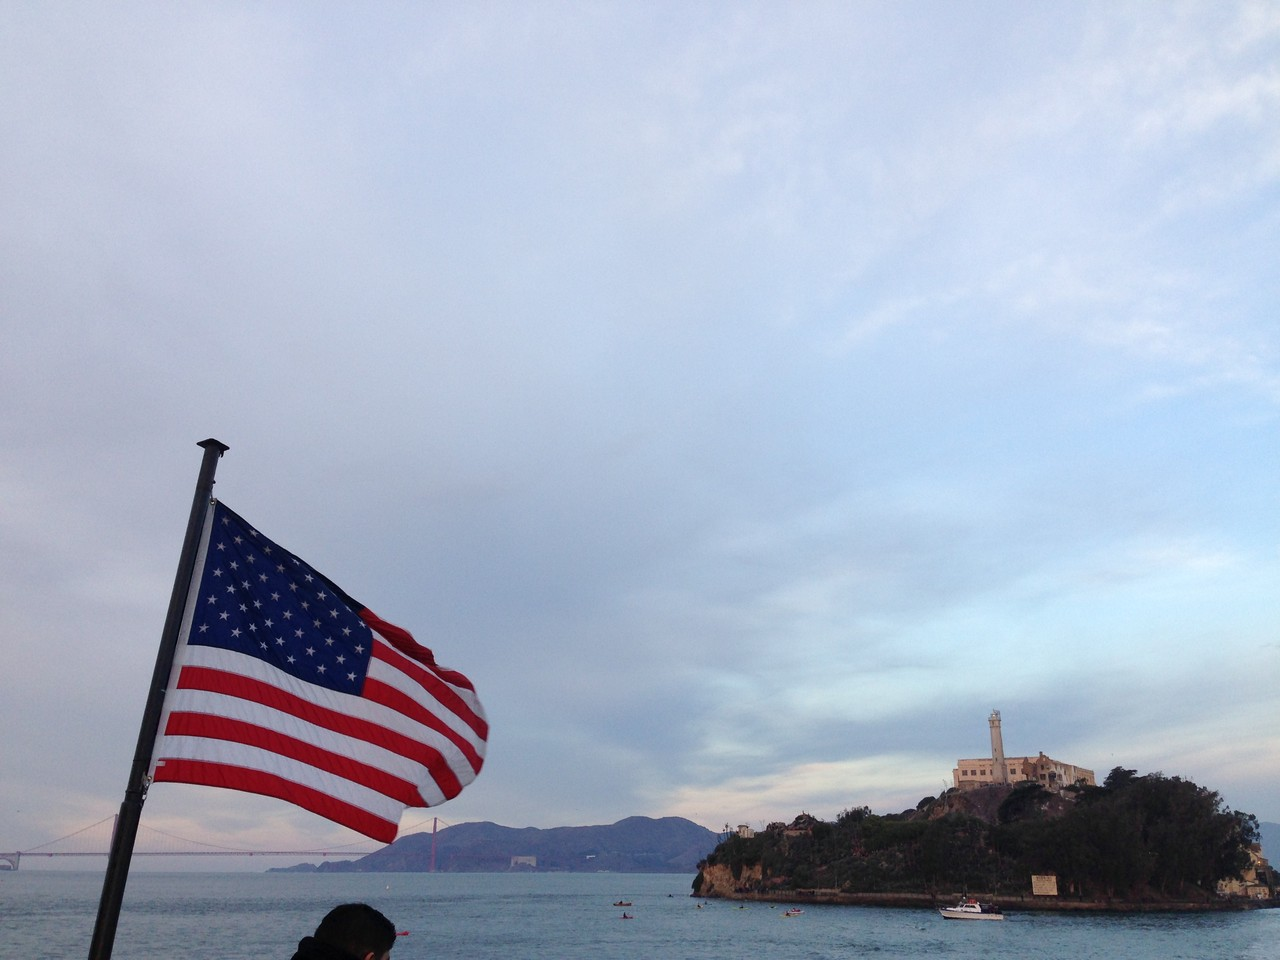 Leaving Alcatraz. Bay Bridge is in the background.